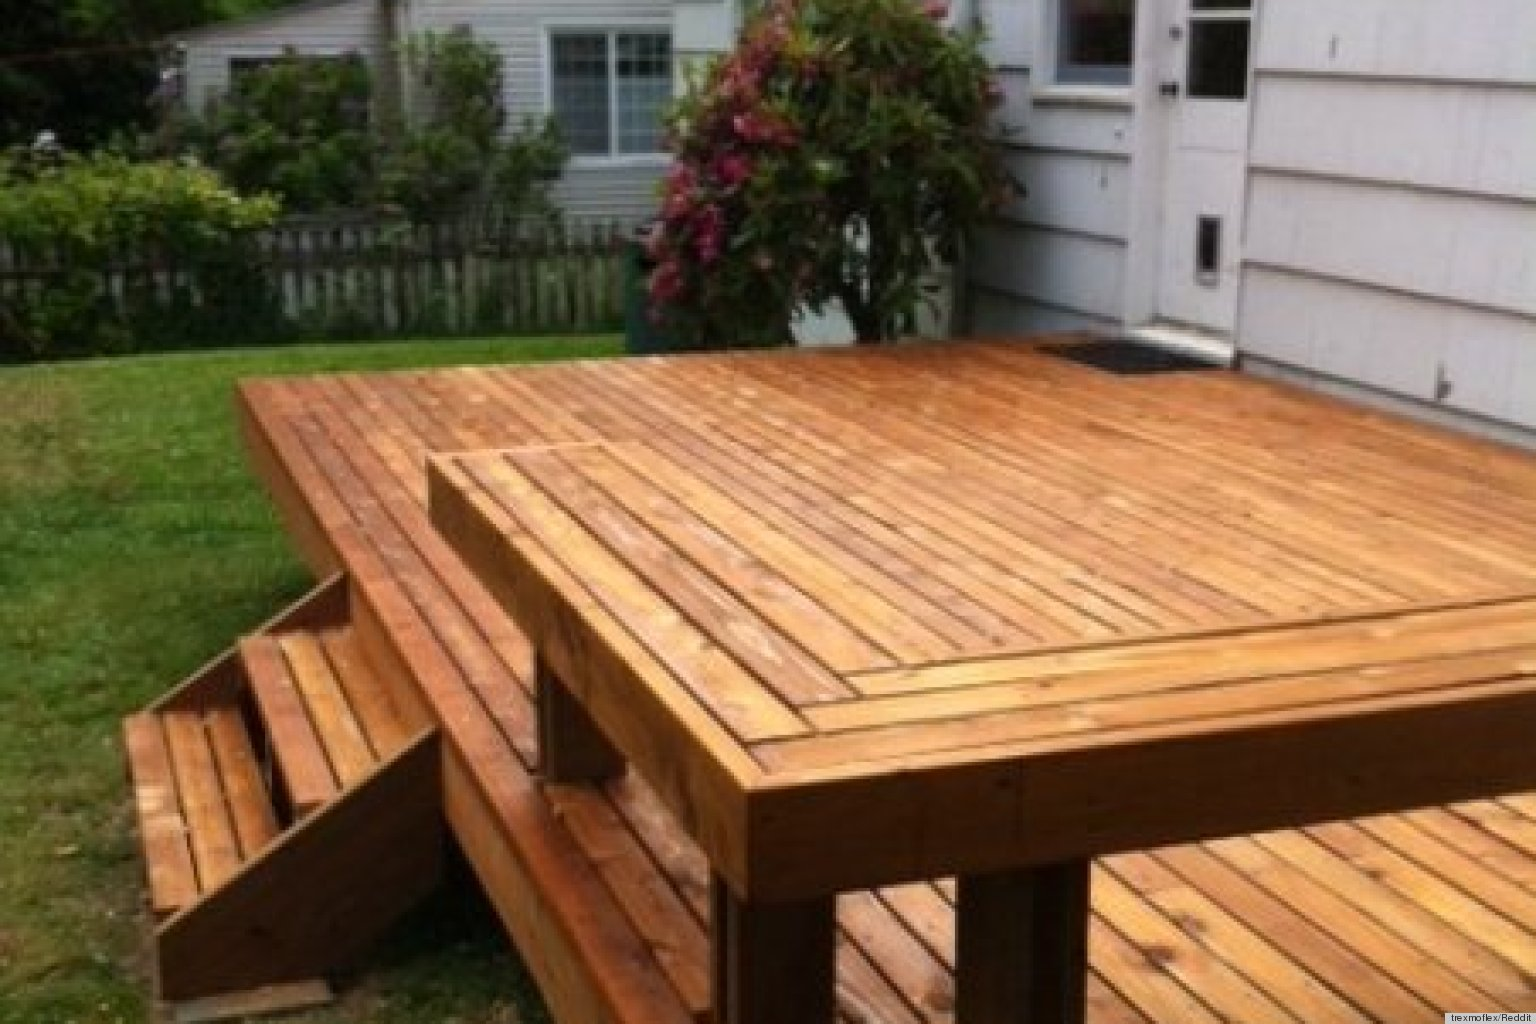 Building a deck is how one couple initiated their new home for Low price decking